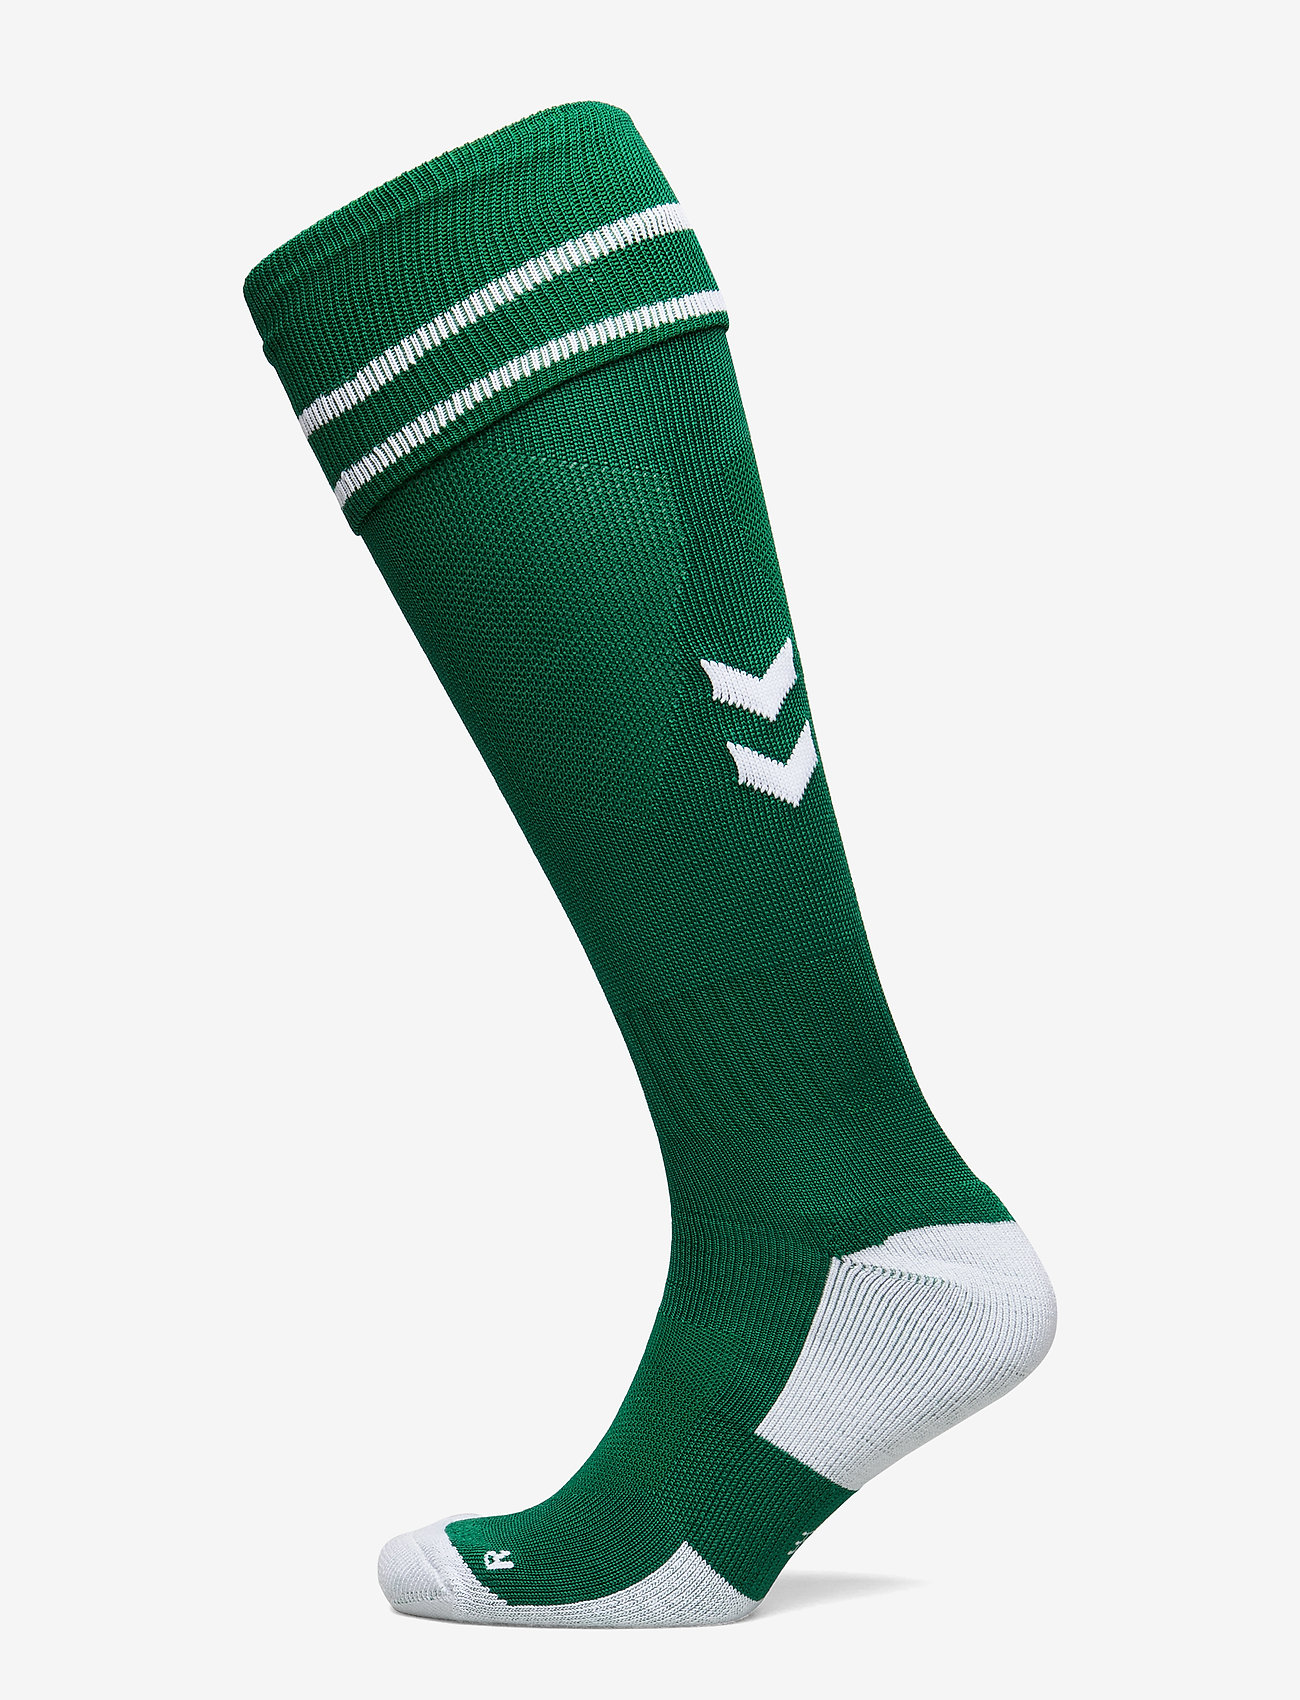 Hummel - ELEMENT FOOTBALL SOCK - fodboldsokker - evergreen/white - 0